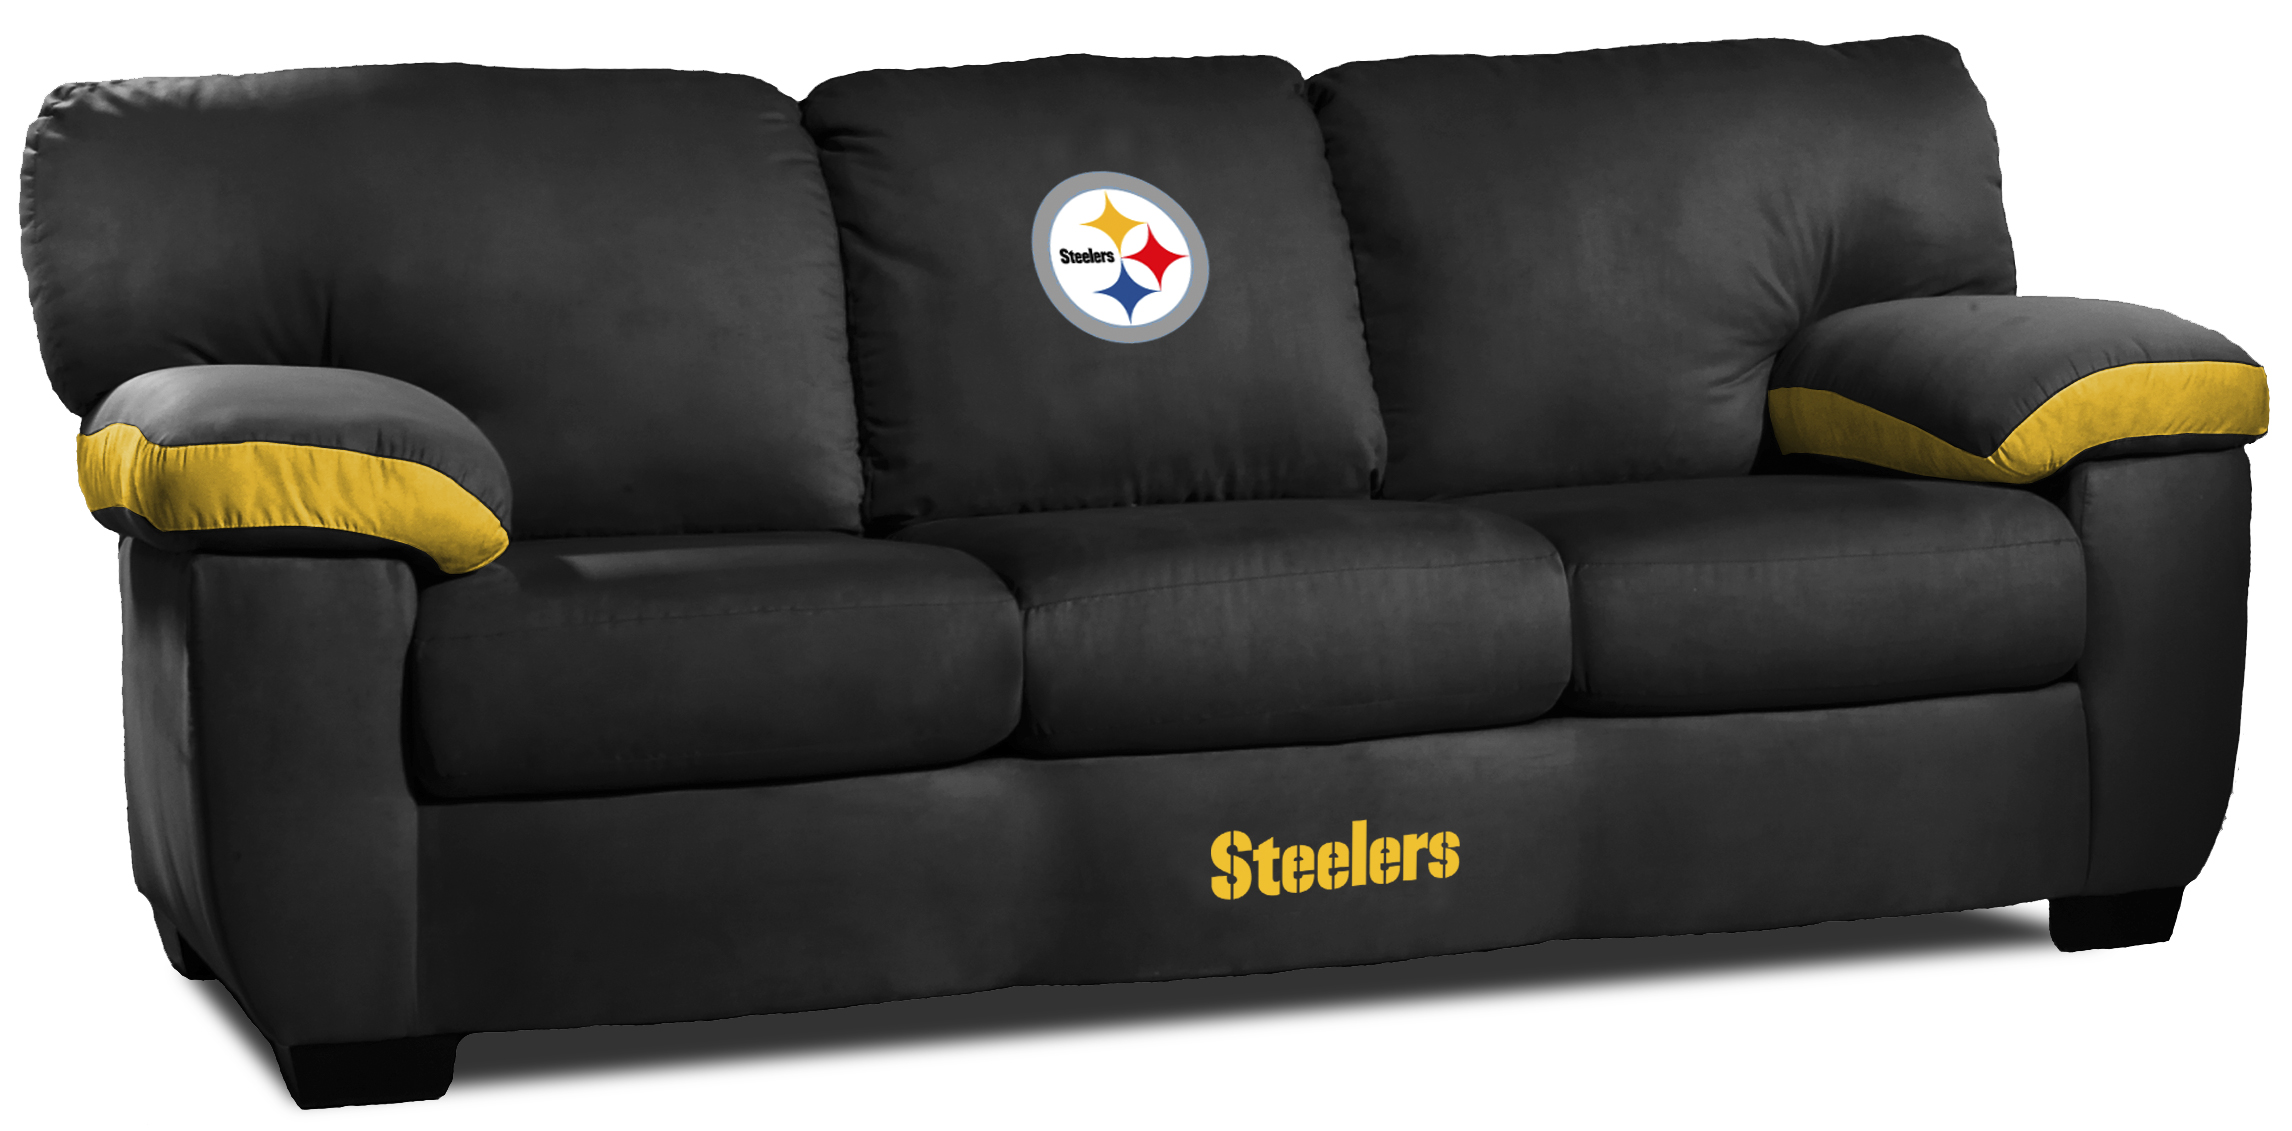 Pittsburgh Steelers Chair New Couch For Josh